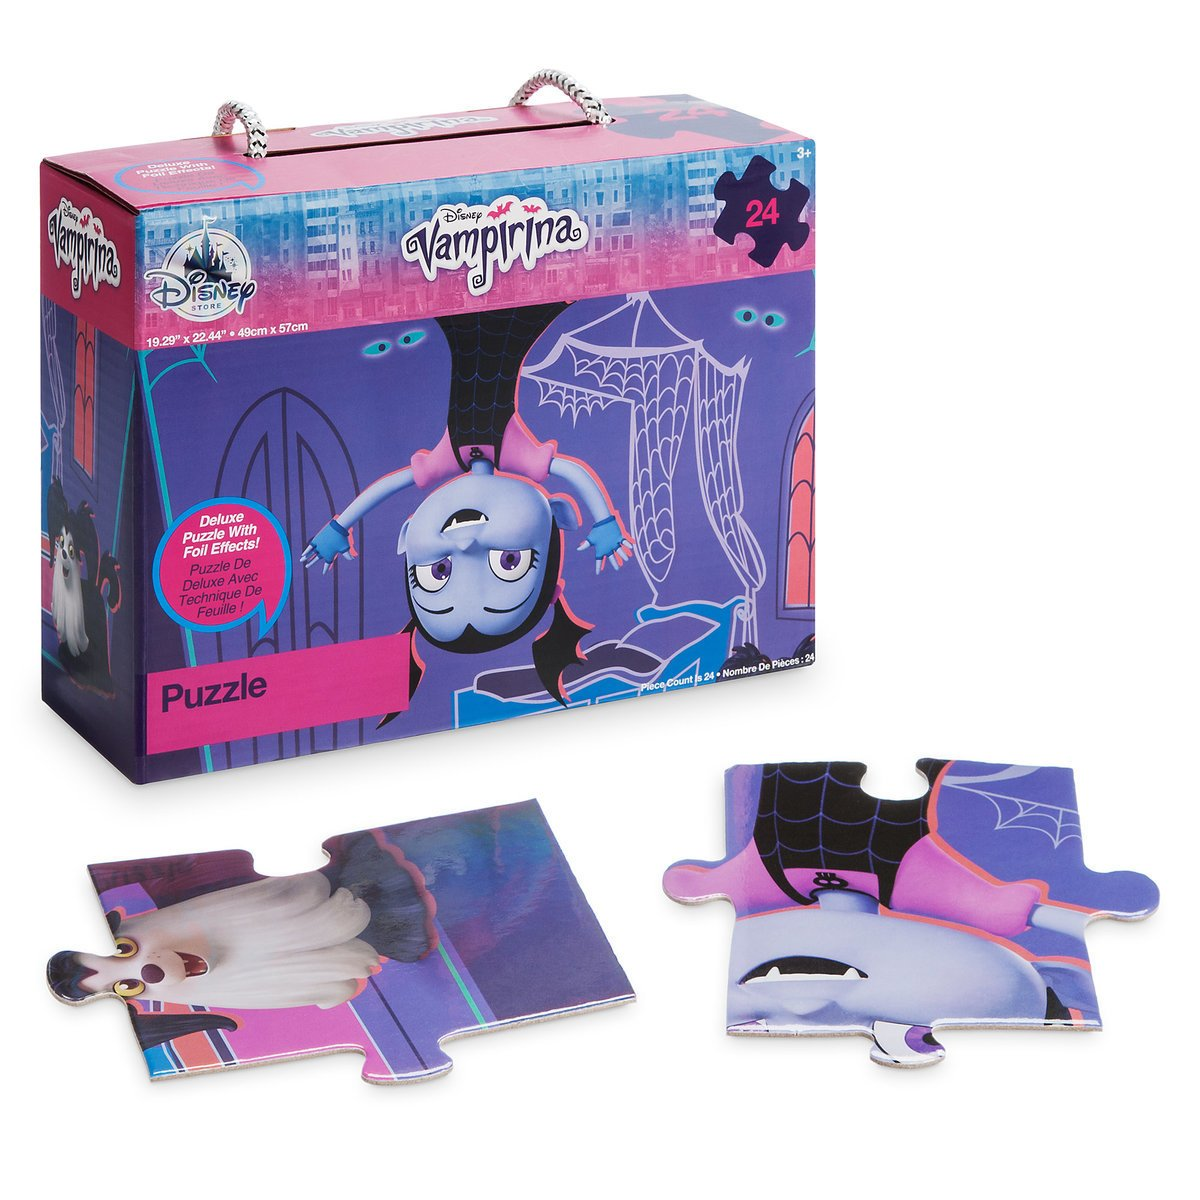 Vampirina 24-Piece Puzzle Vampirina W/Storage with 24-Piece box with Carry Strap B079SKQ6JG, 洋服倉庫:bc9f8130 --- ero-shop-kupidon.ru